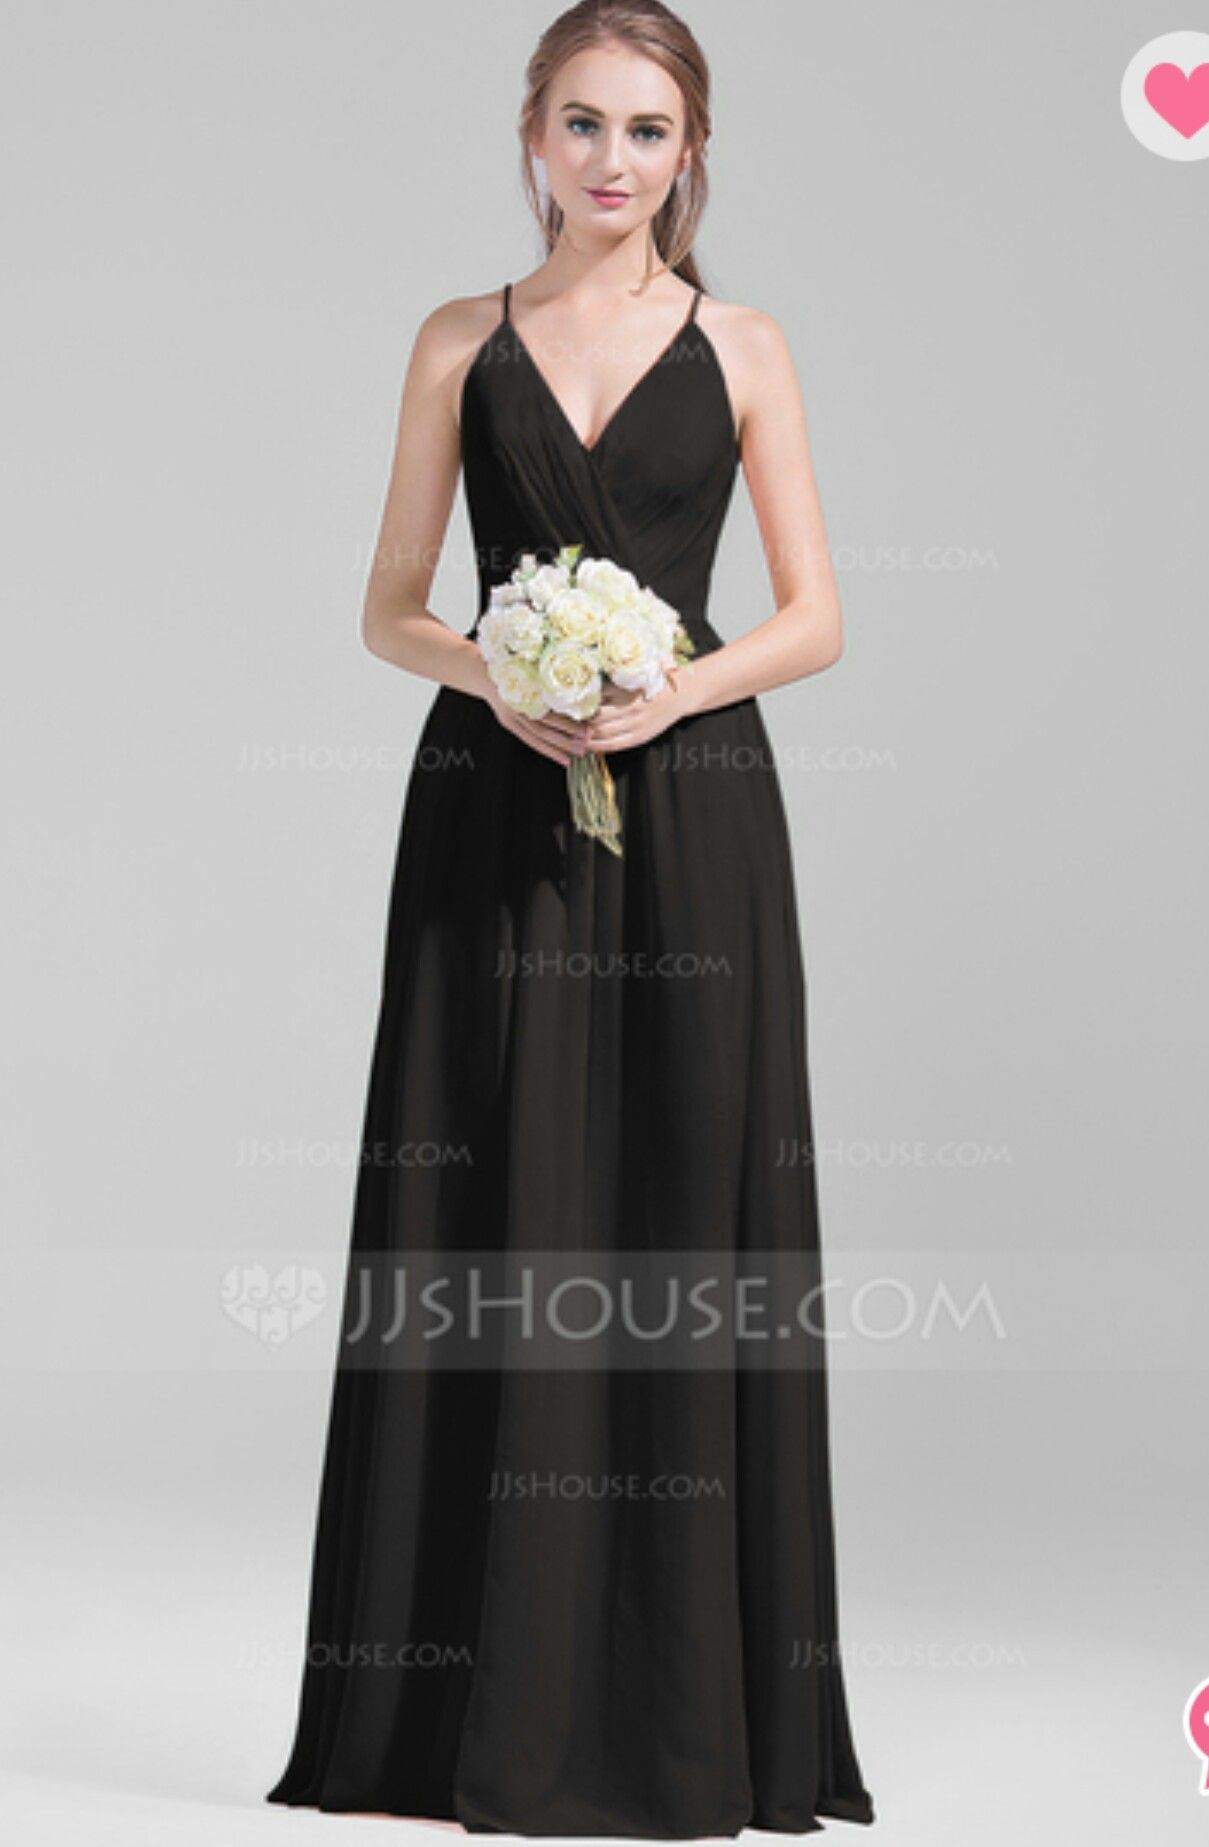 Bridesmaids dress in black or red from jjs house wedding official